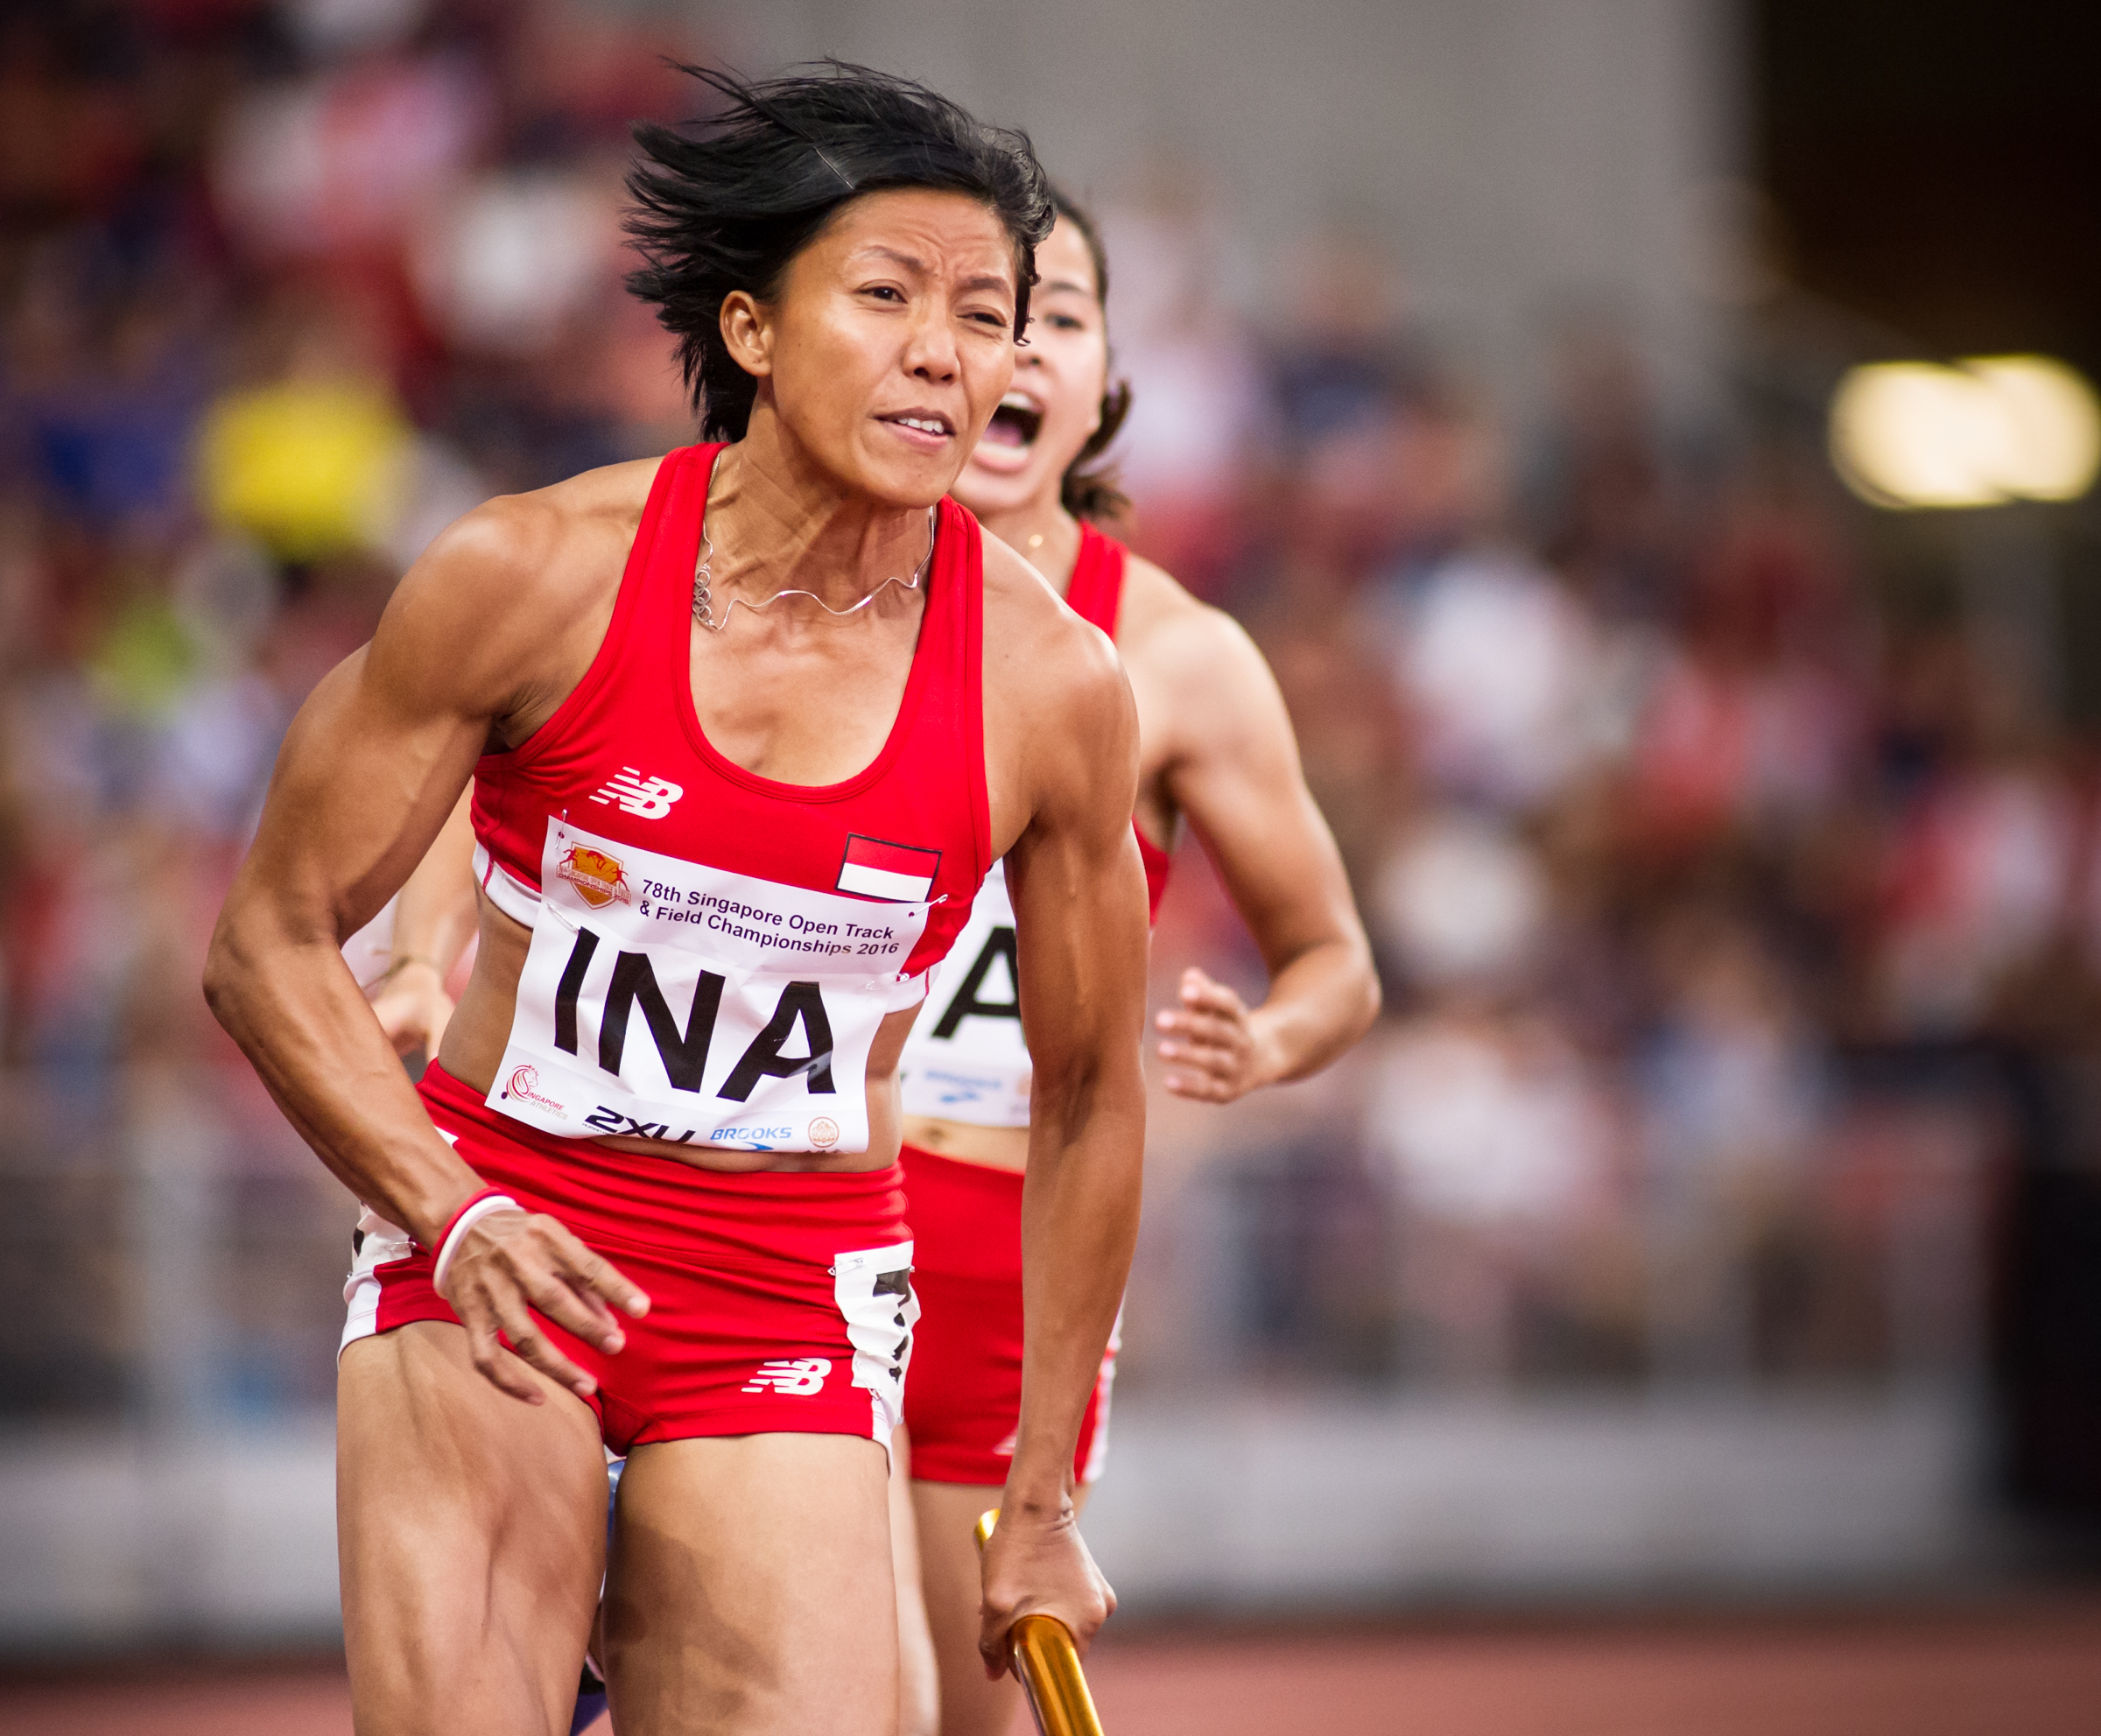 An Indonesian runner prepares to accelerate after receiving the baton in the 4 x 400 relay finals during the Singapore Open Track and Field Championships held at the Singapore Sports Hub.